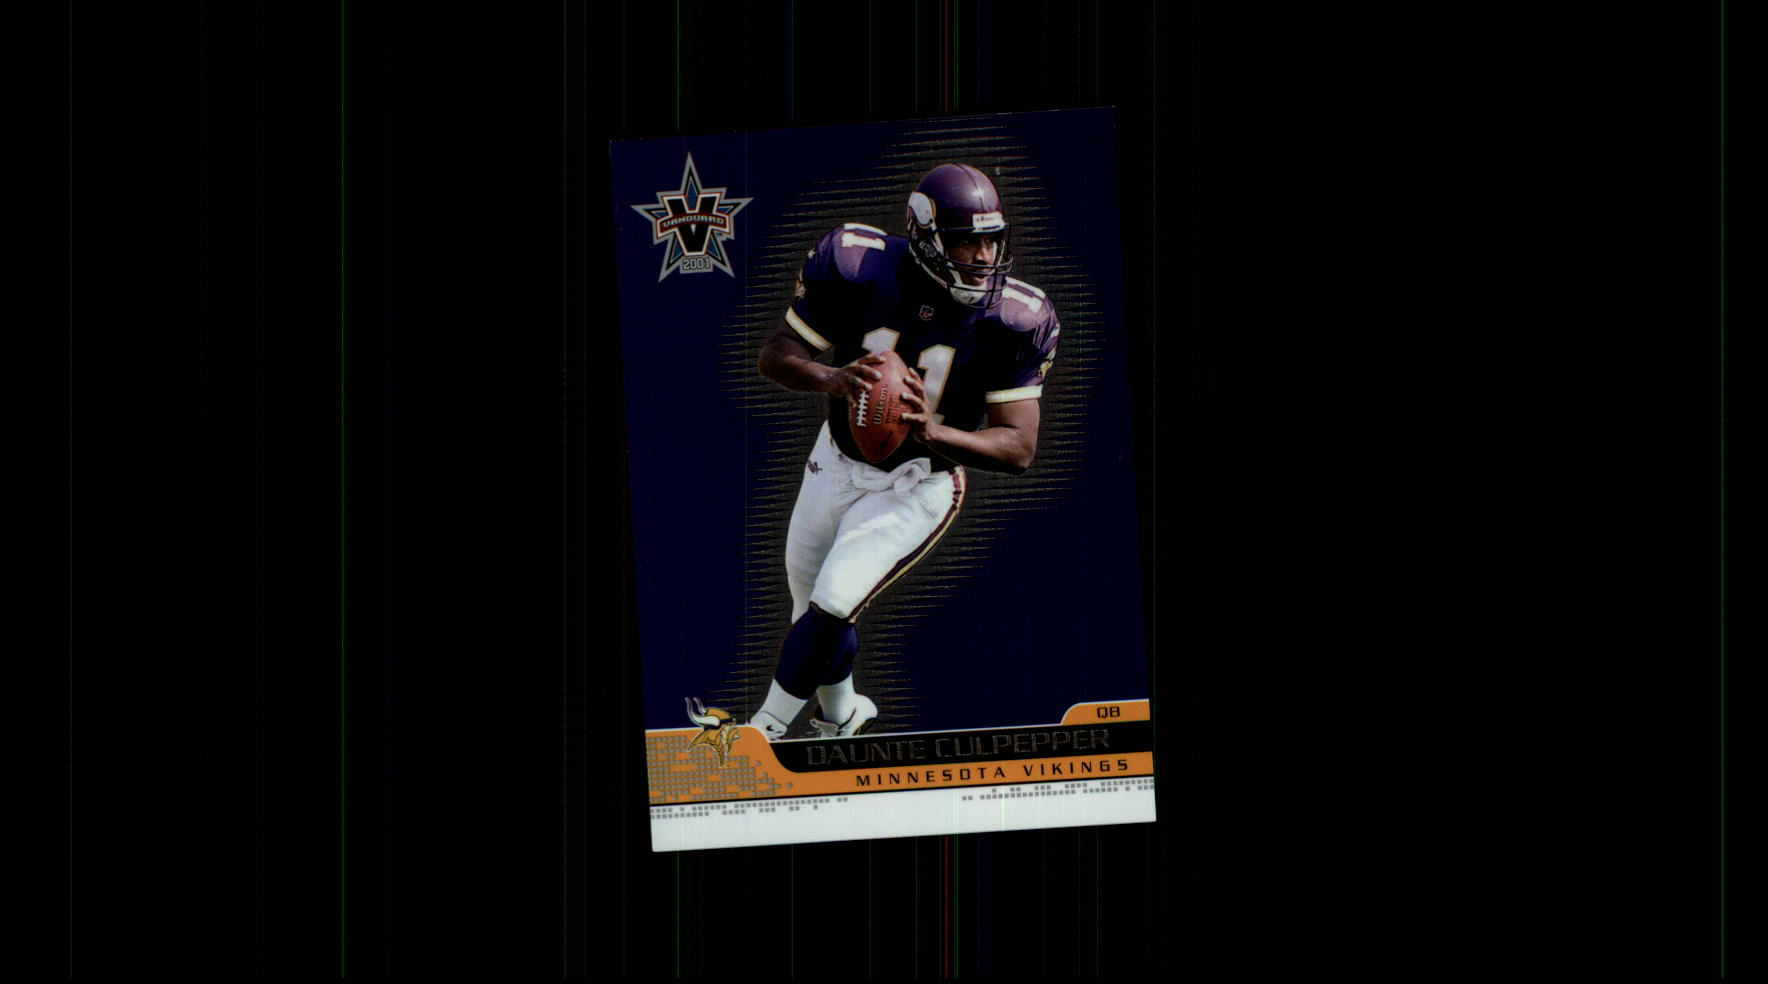 2001 Vanguard #52 Daunte Culpepper